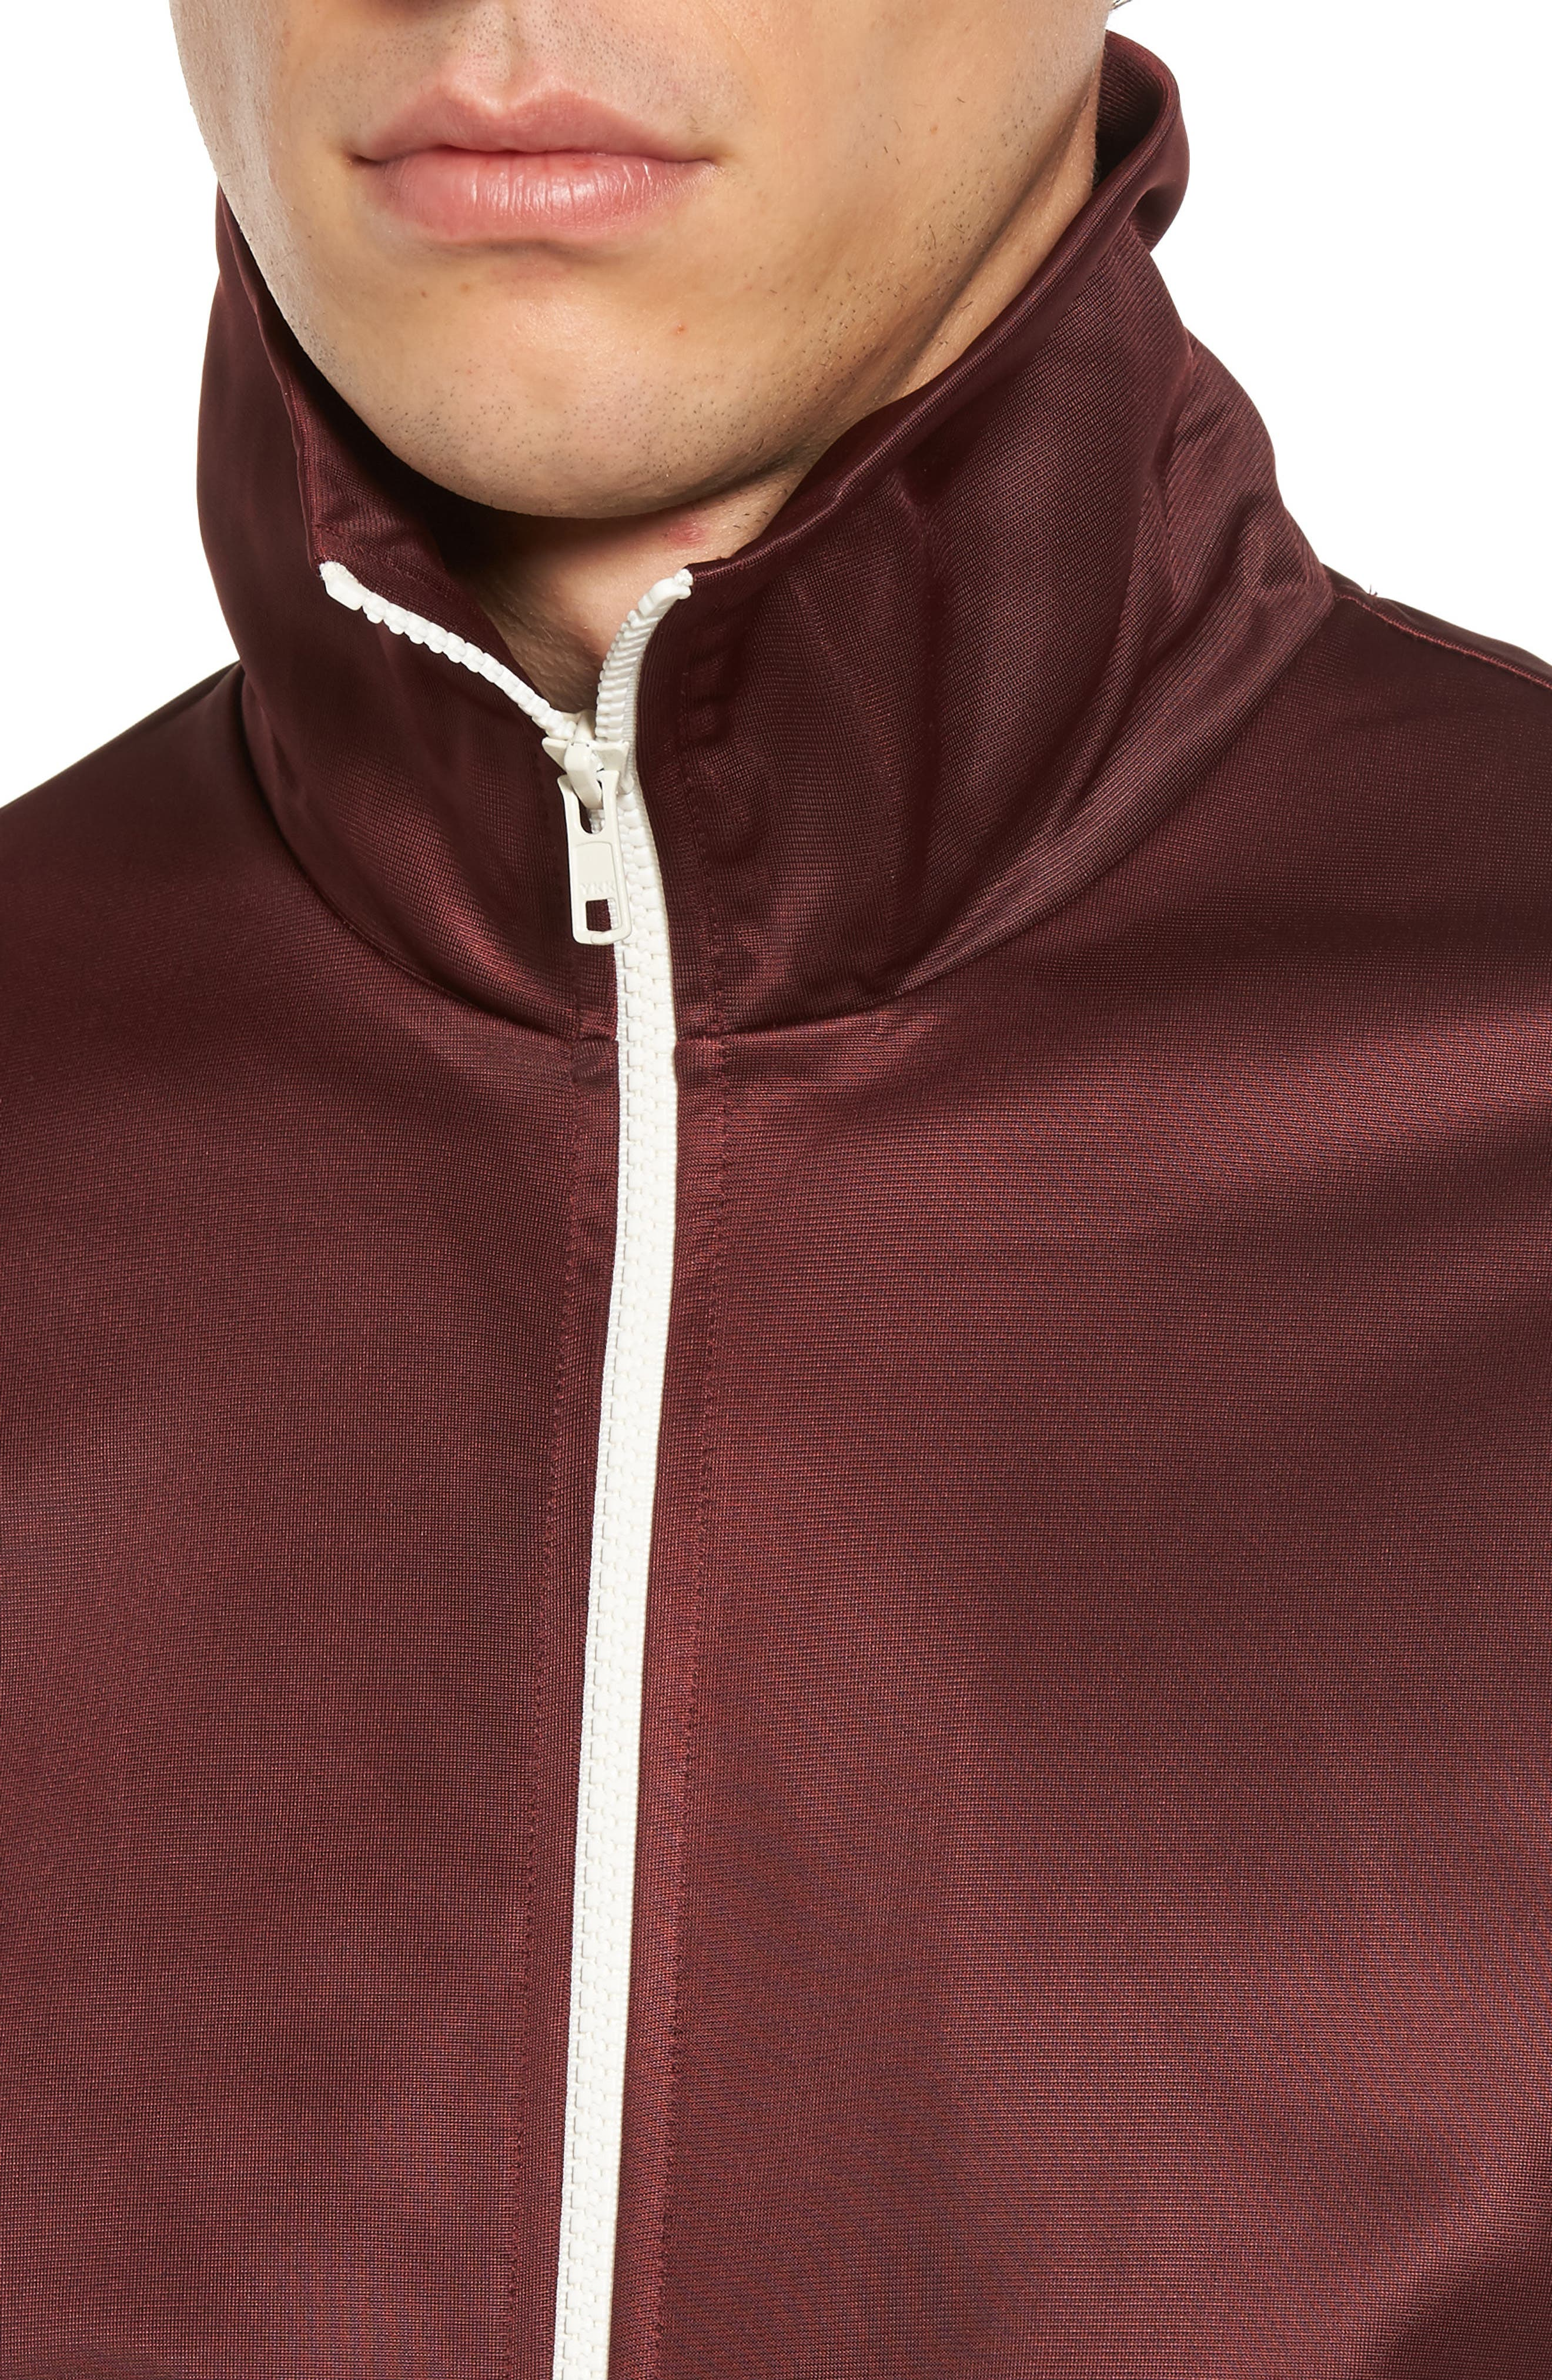 Marcus Track Jacket,                             Alternate thumbnail 4, color,